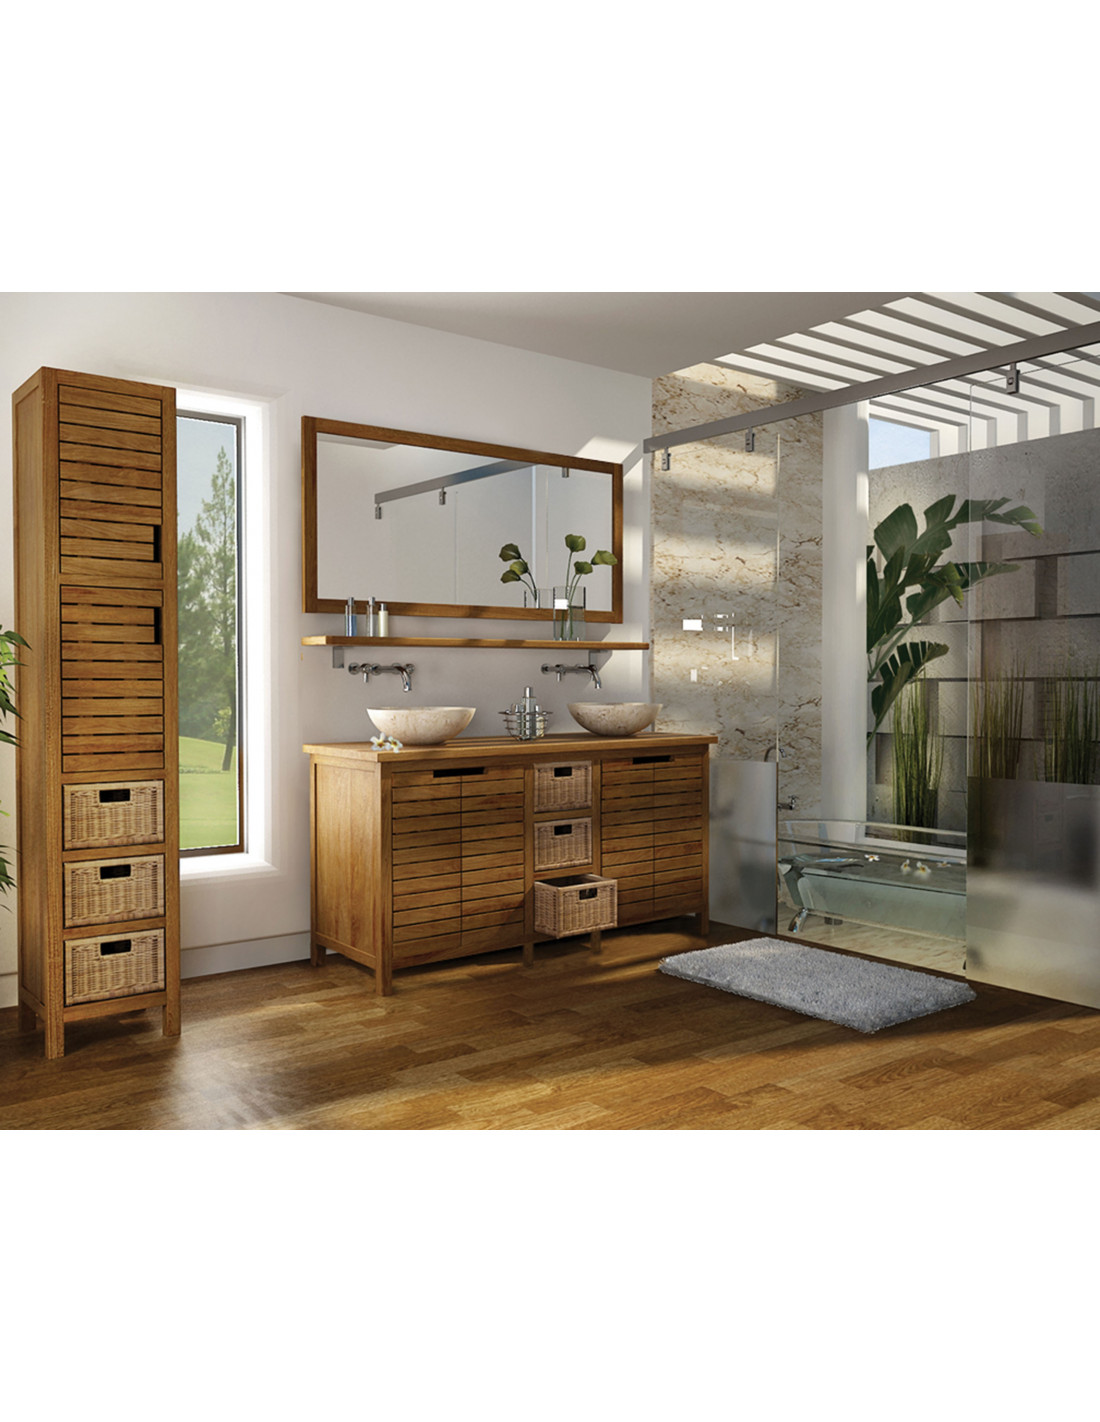 pascal jr paillet meuble salle de bain en teck pyla 140 cm. Black Bedroom Furniture Sets. Home Design Ideas